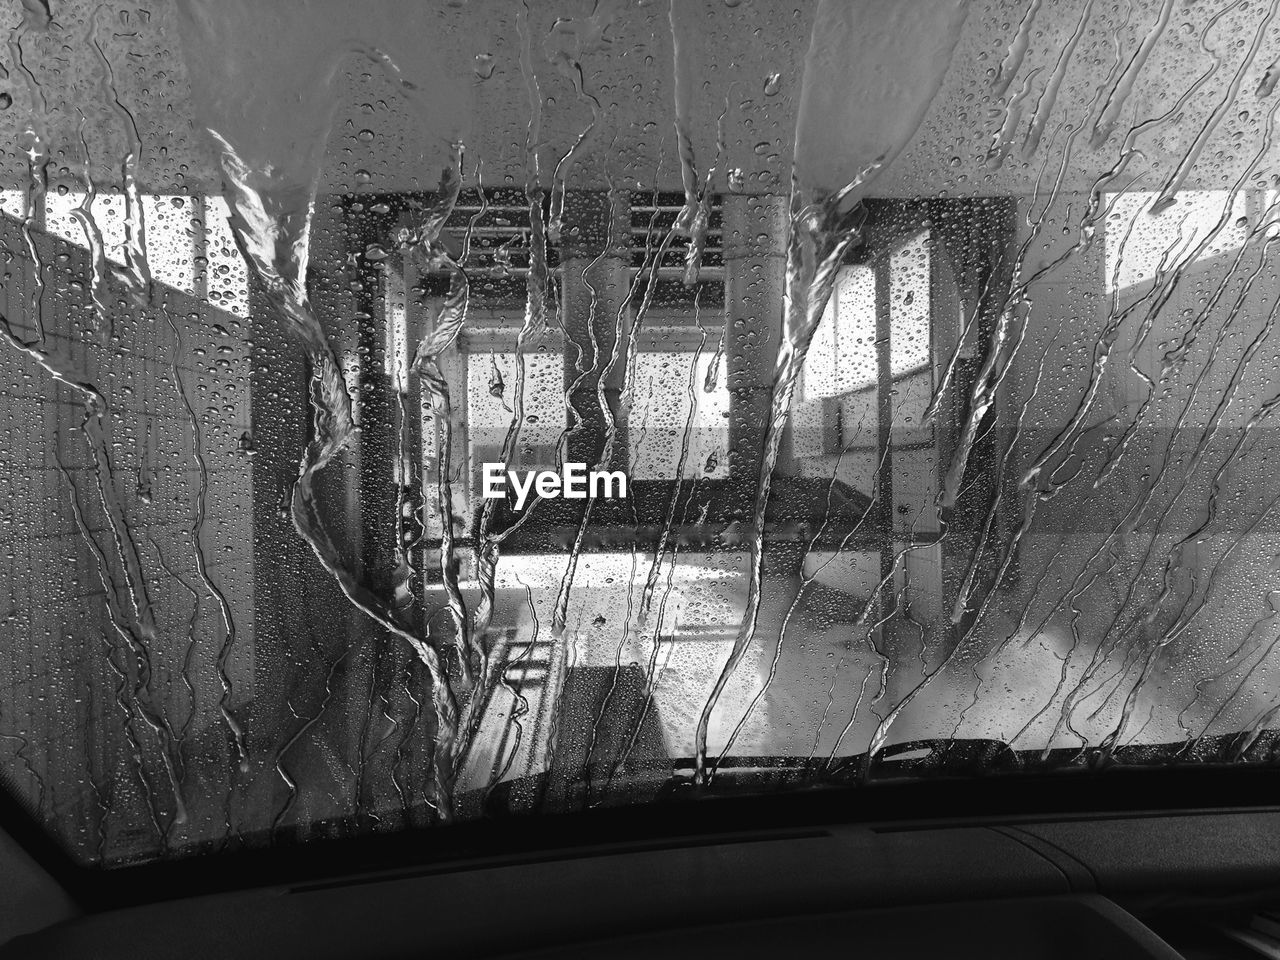 window, transparent, glass - material, car, windshield, land vehicle, transportation, mode of transport, car interior, looking through window, day, no people, indoors, water, car wash, close-up